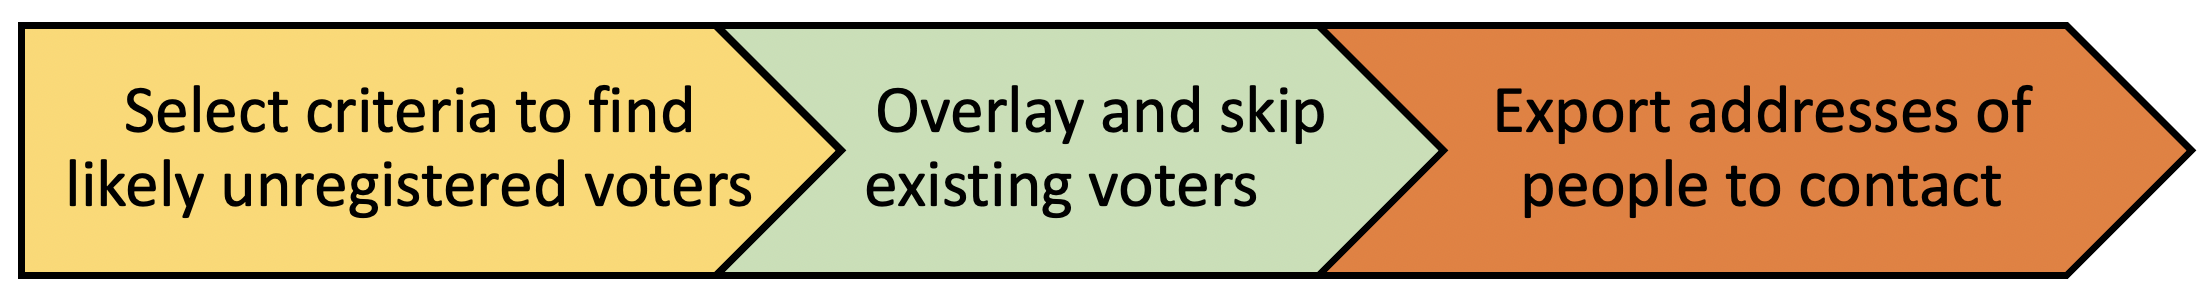 Find areas with a high likelihood of having unregistered voters.